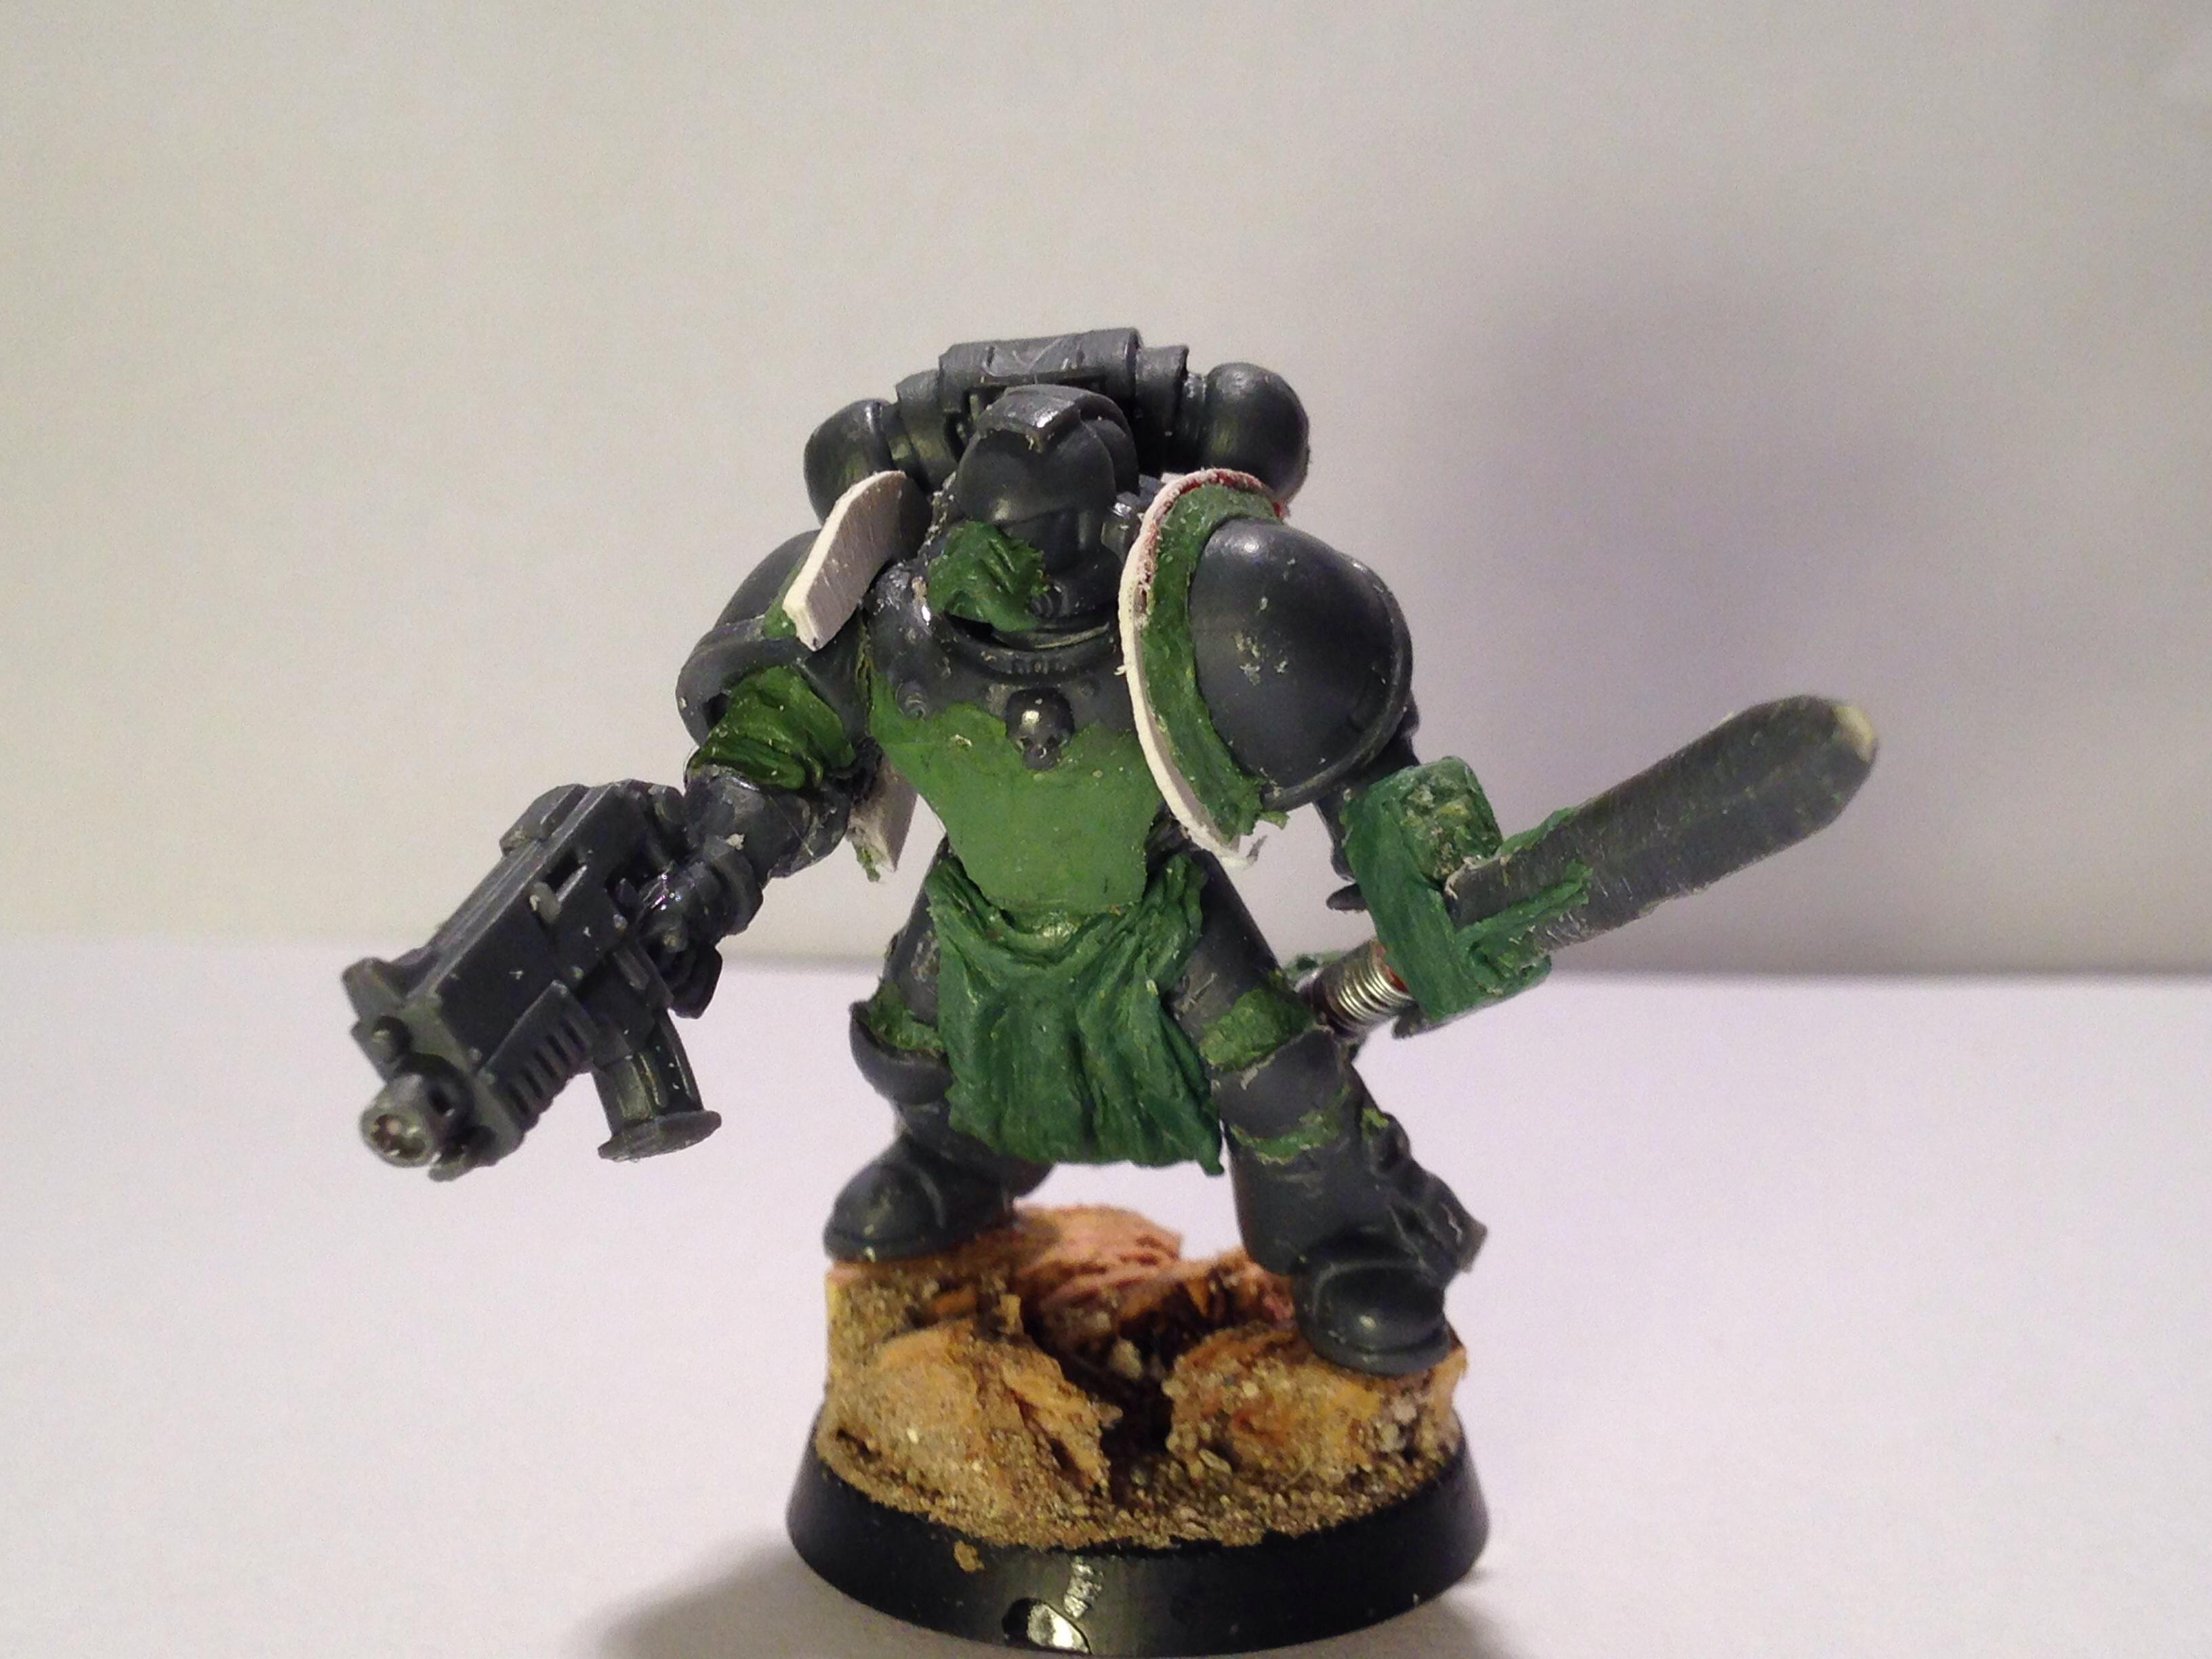 30k, Conversion, Greenstuff, Horus Heresy, Raven Guard, Space Marines, Work In Progress